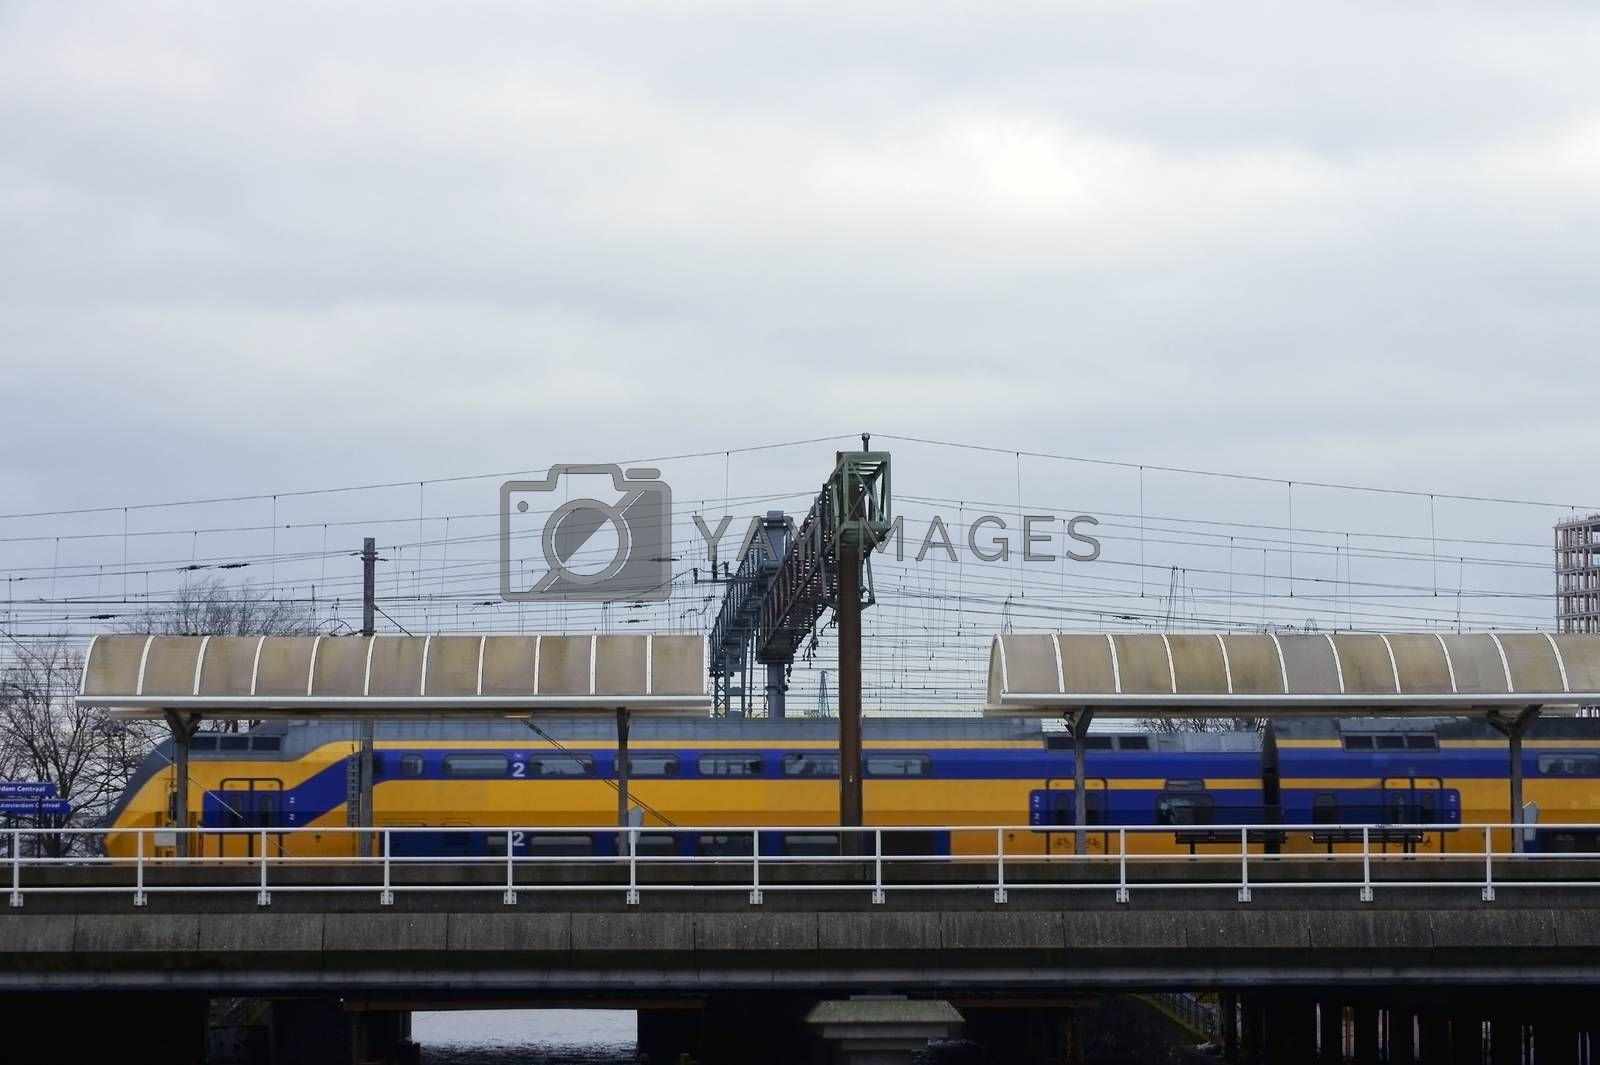 Amsterdam, Netherlands - December 30, 2014: A train crosses a bridge and stops at a station on the Port of Amsterdam outside the main railway station on December 30, 2014 in Amsterdam.